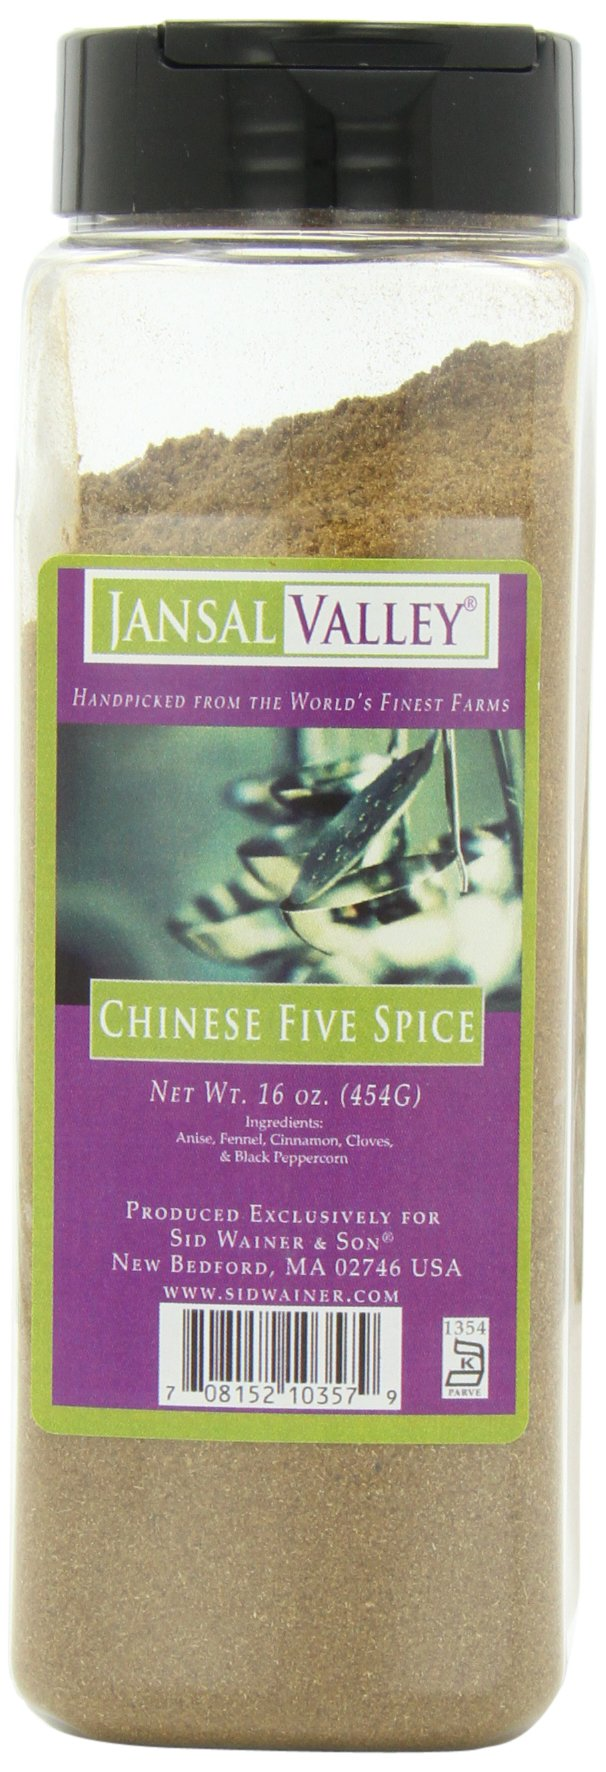 Jansal Valley Chinese Five Spice, 16 Ounce